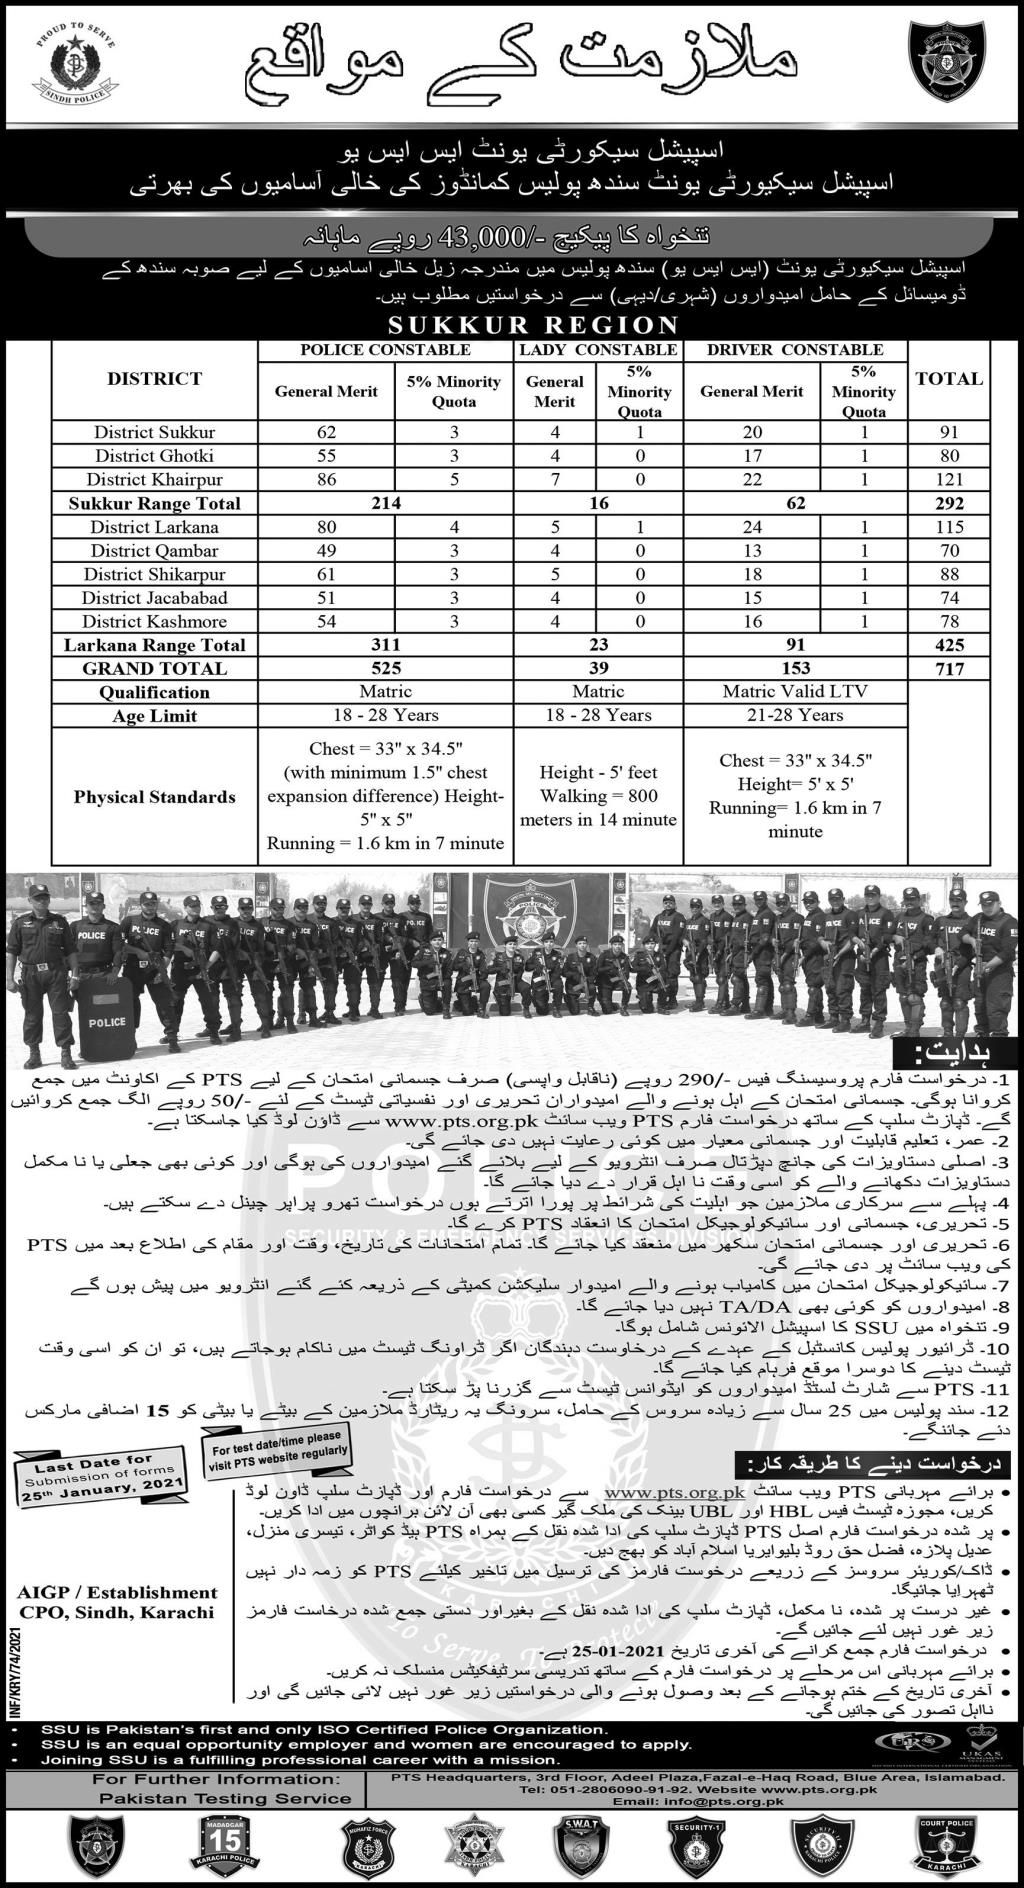 Special Security Unit SSU Jobs 2021 - SSU Commandos Jobs 2021 - Police Constable Jobs 2021 - Lady Constable Jobs 2021 - Special Security Unit SSU Sukkur Region Jobs 2021